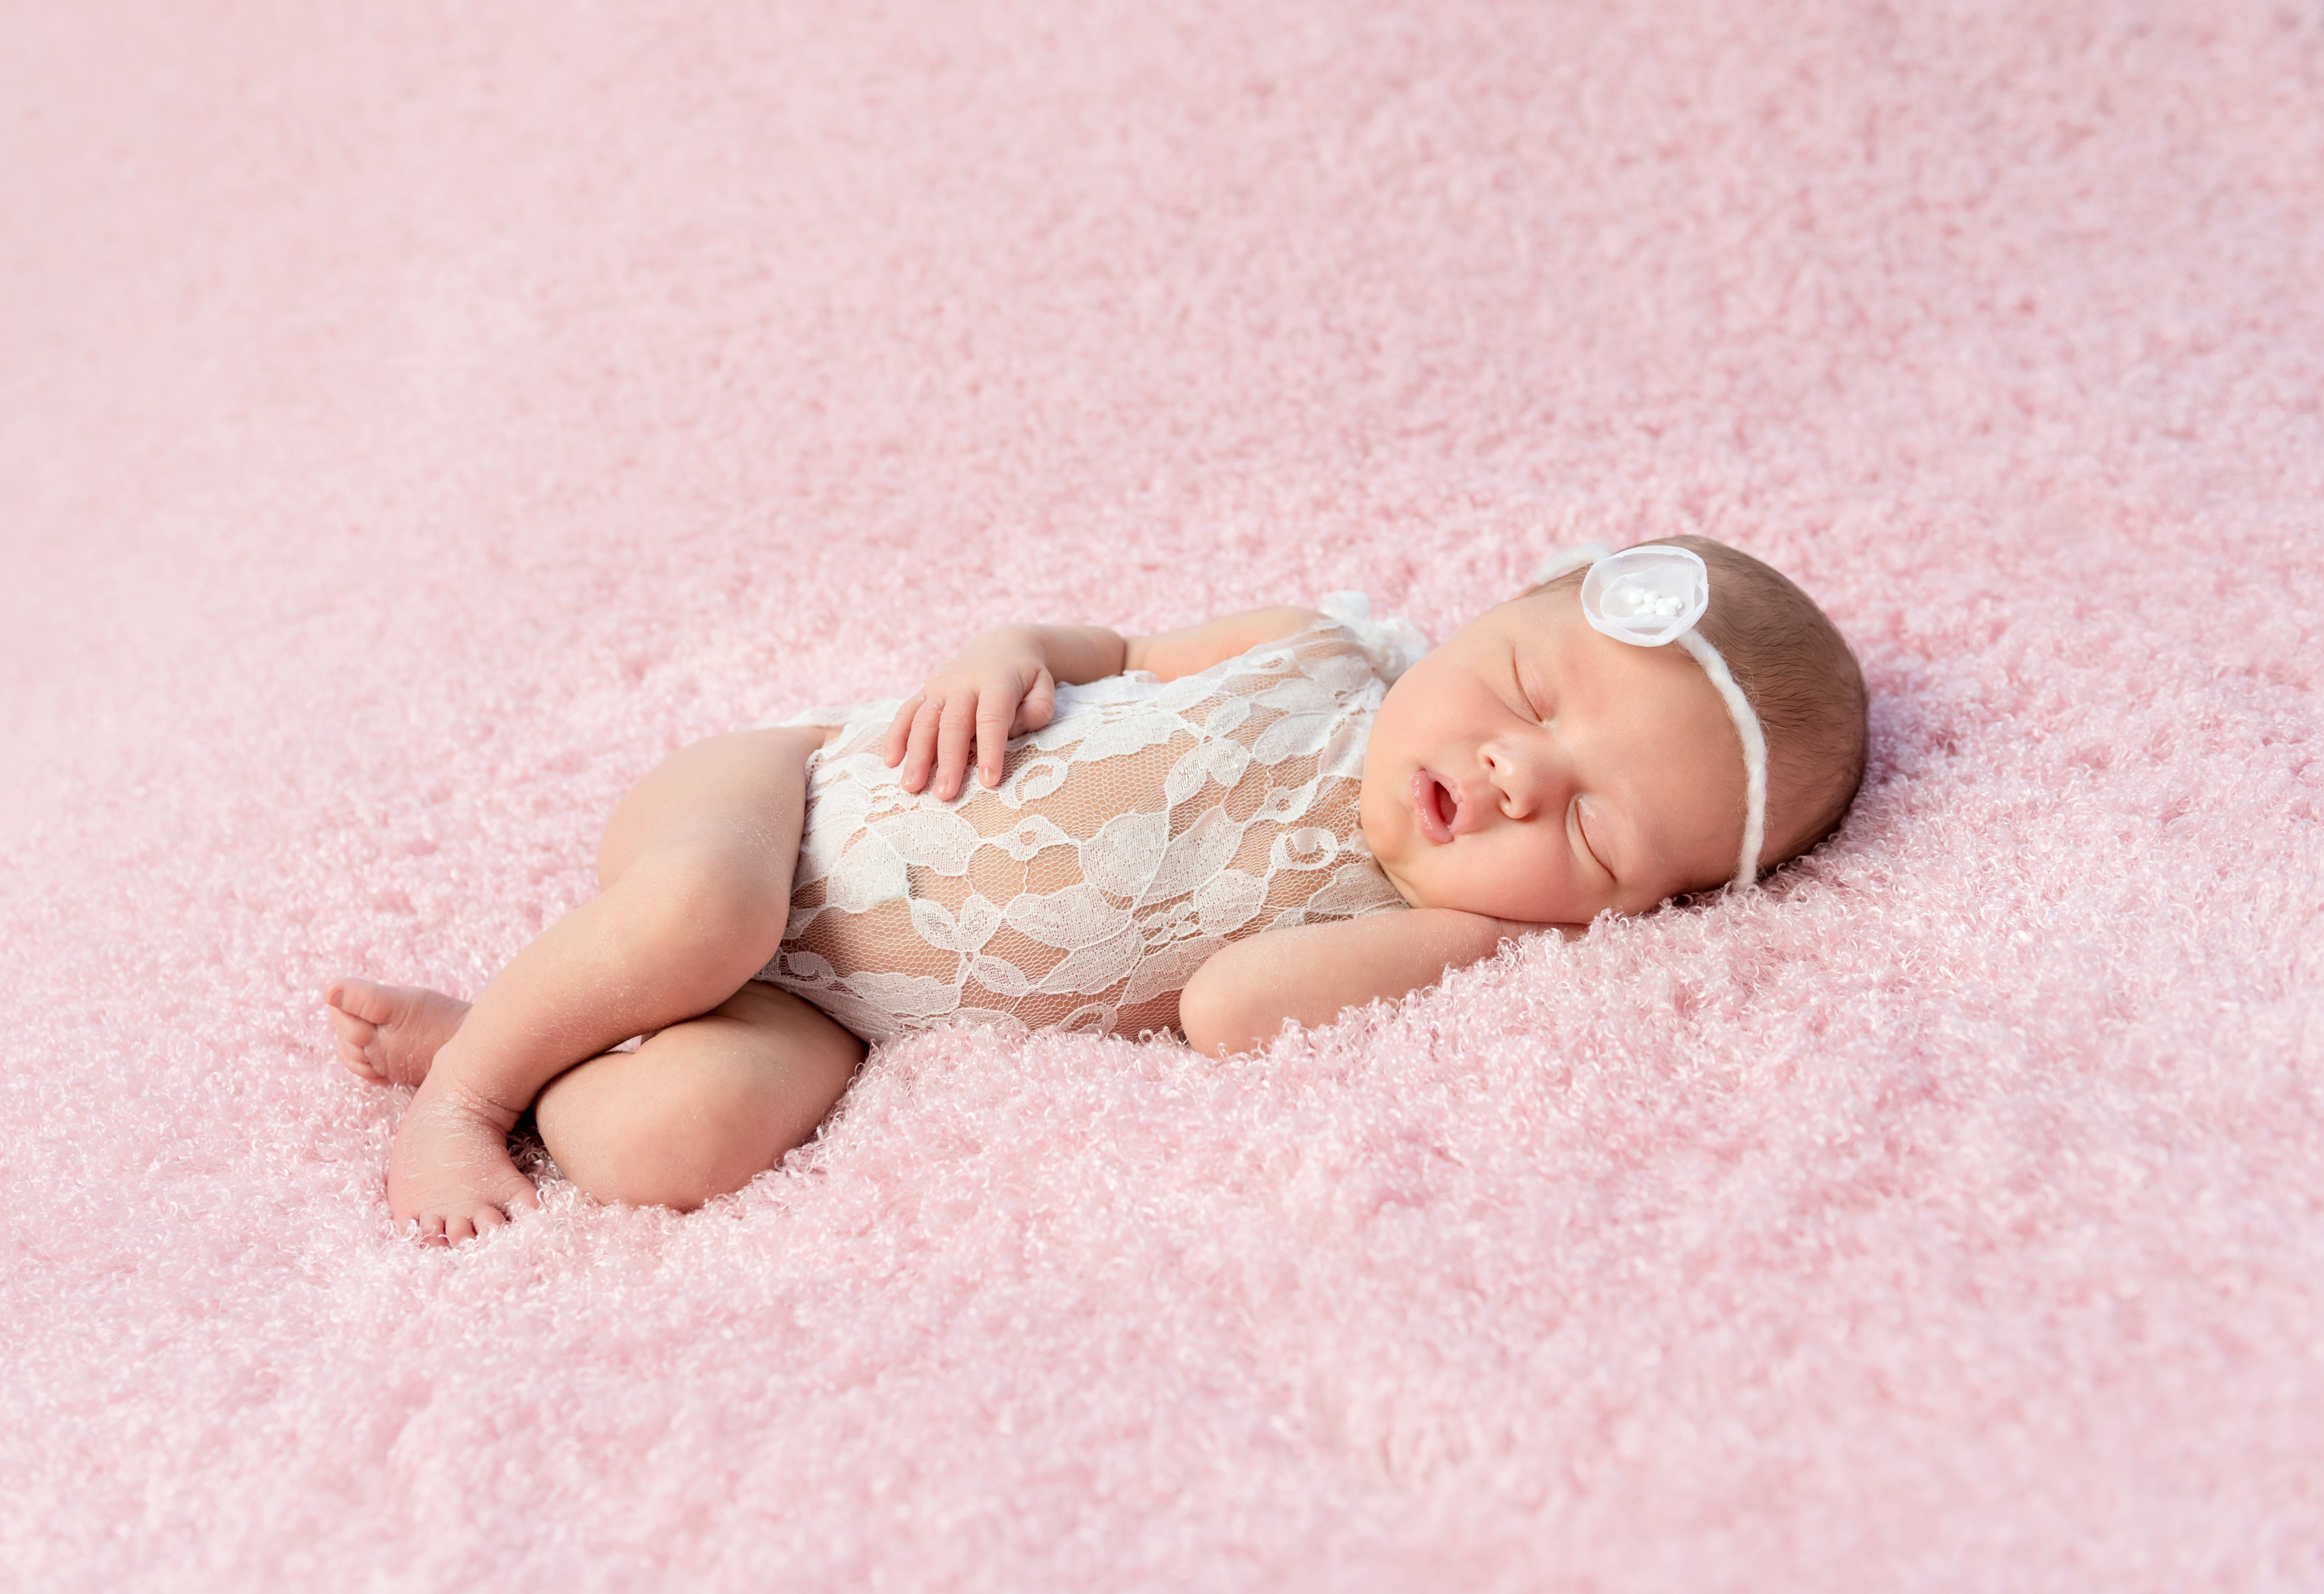 cute smiling newborn baby in wreath sleeps on blanket; Shutterstock ID 412371835; Title: ierse babynamen